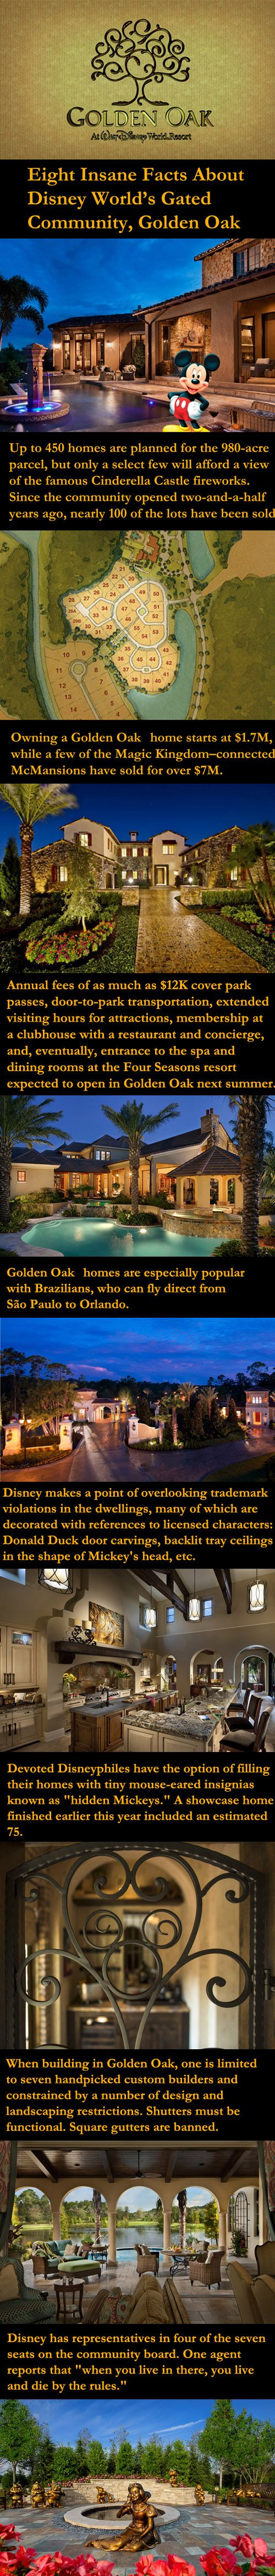 GOLDEN OAK.  Eight Insane Facts About Disney World's Gated Community